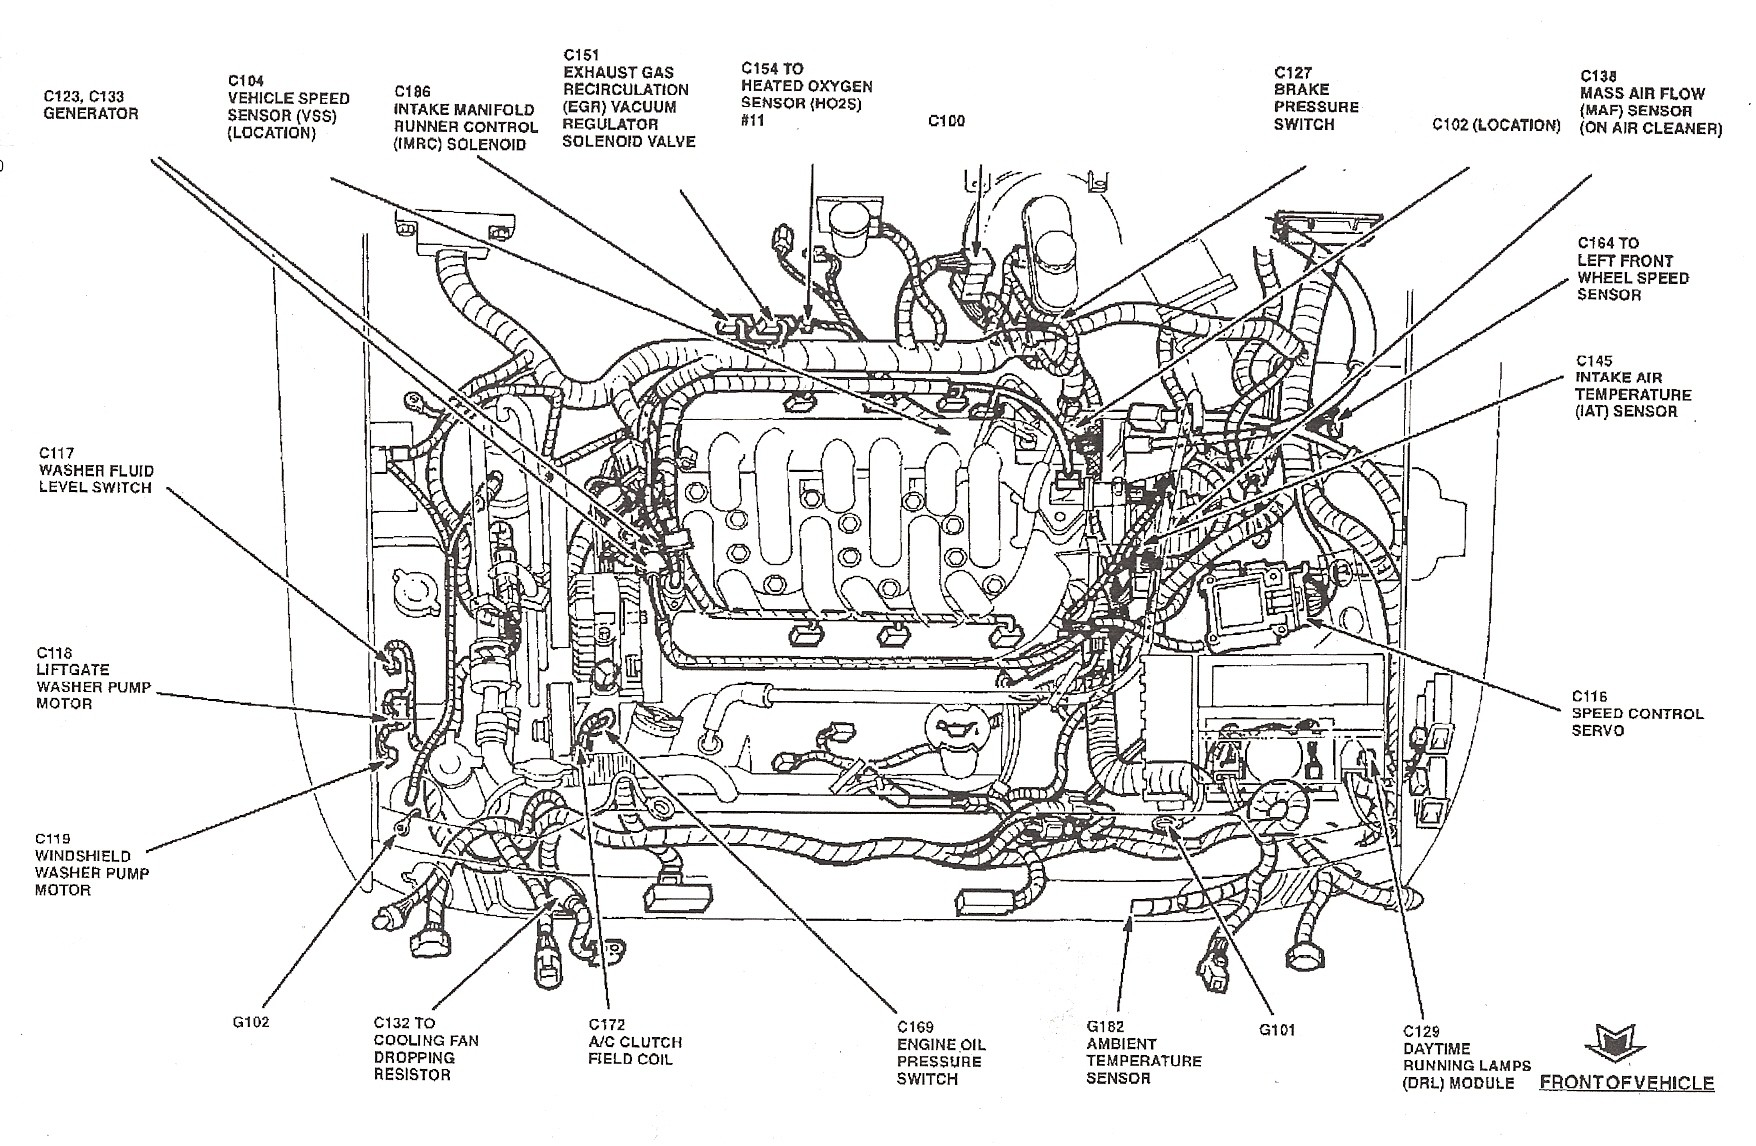 2003 ford Focus Zx3 Engine Diagram Zetec Engine Diagram Vacuum Wiring  Wiring Diagrams Instructions Of 2003